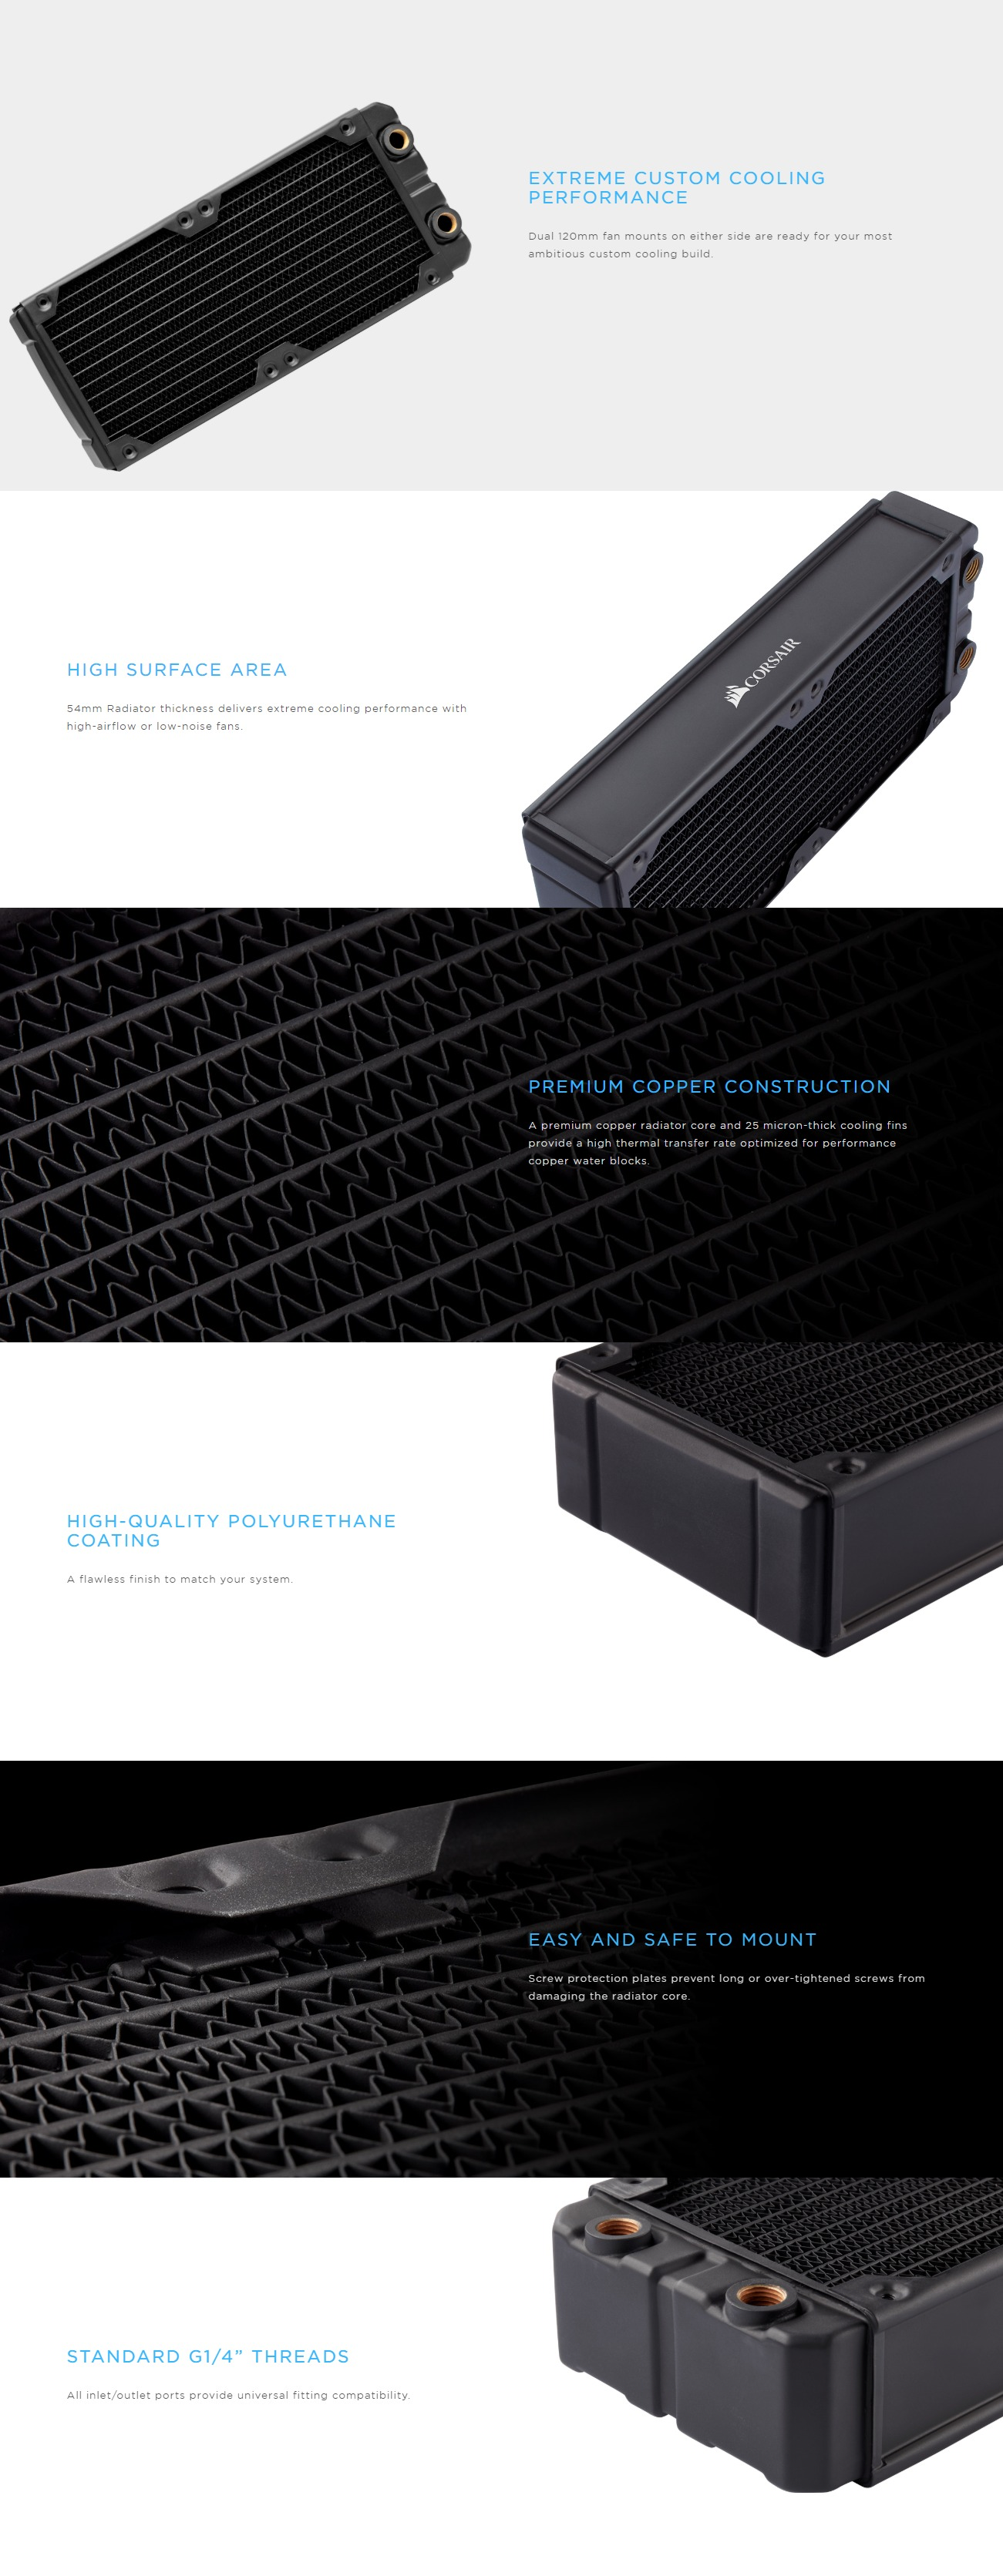 A large marketing image providing additional information about the product Corsair Hydro X Series XR7 240mm Radiator - Additional alt info not provided